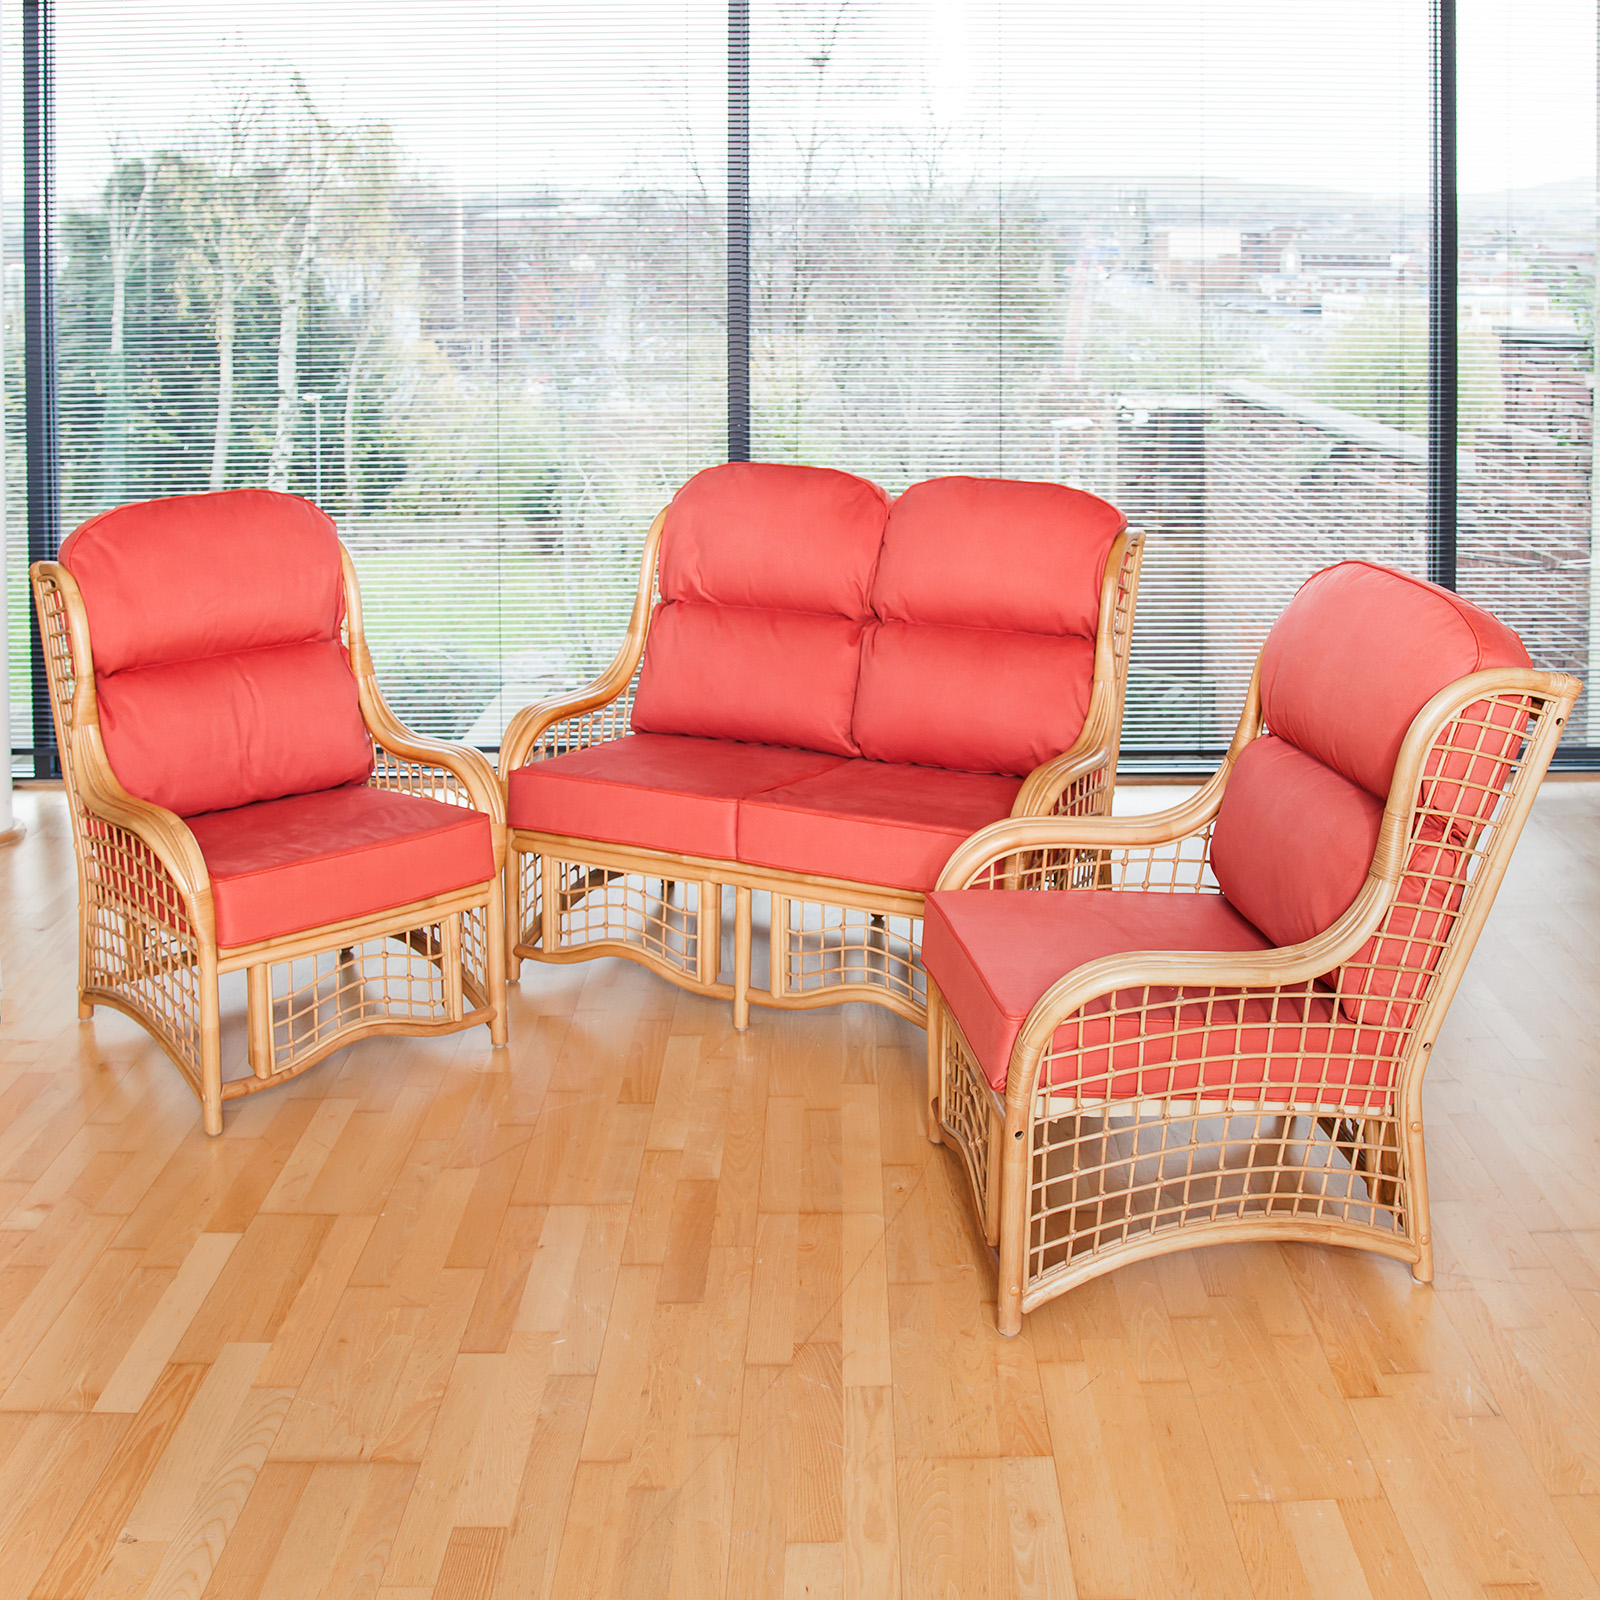 Alfresia Bali Cane Conservatory Furniture Full Suite With